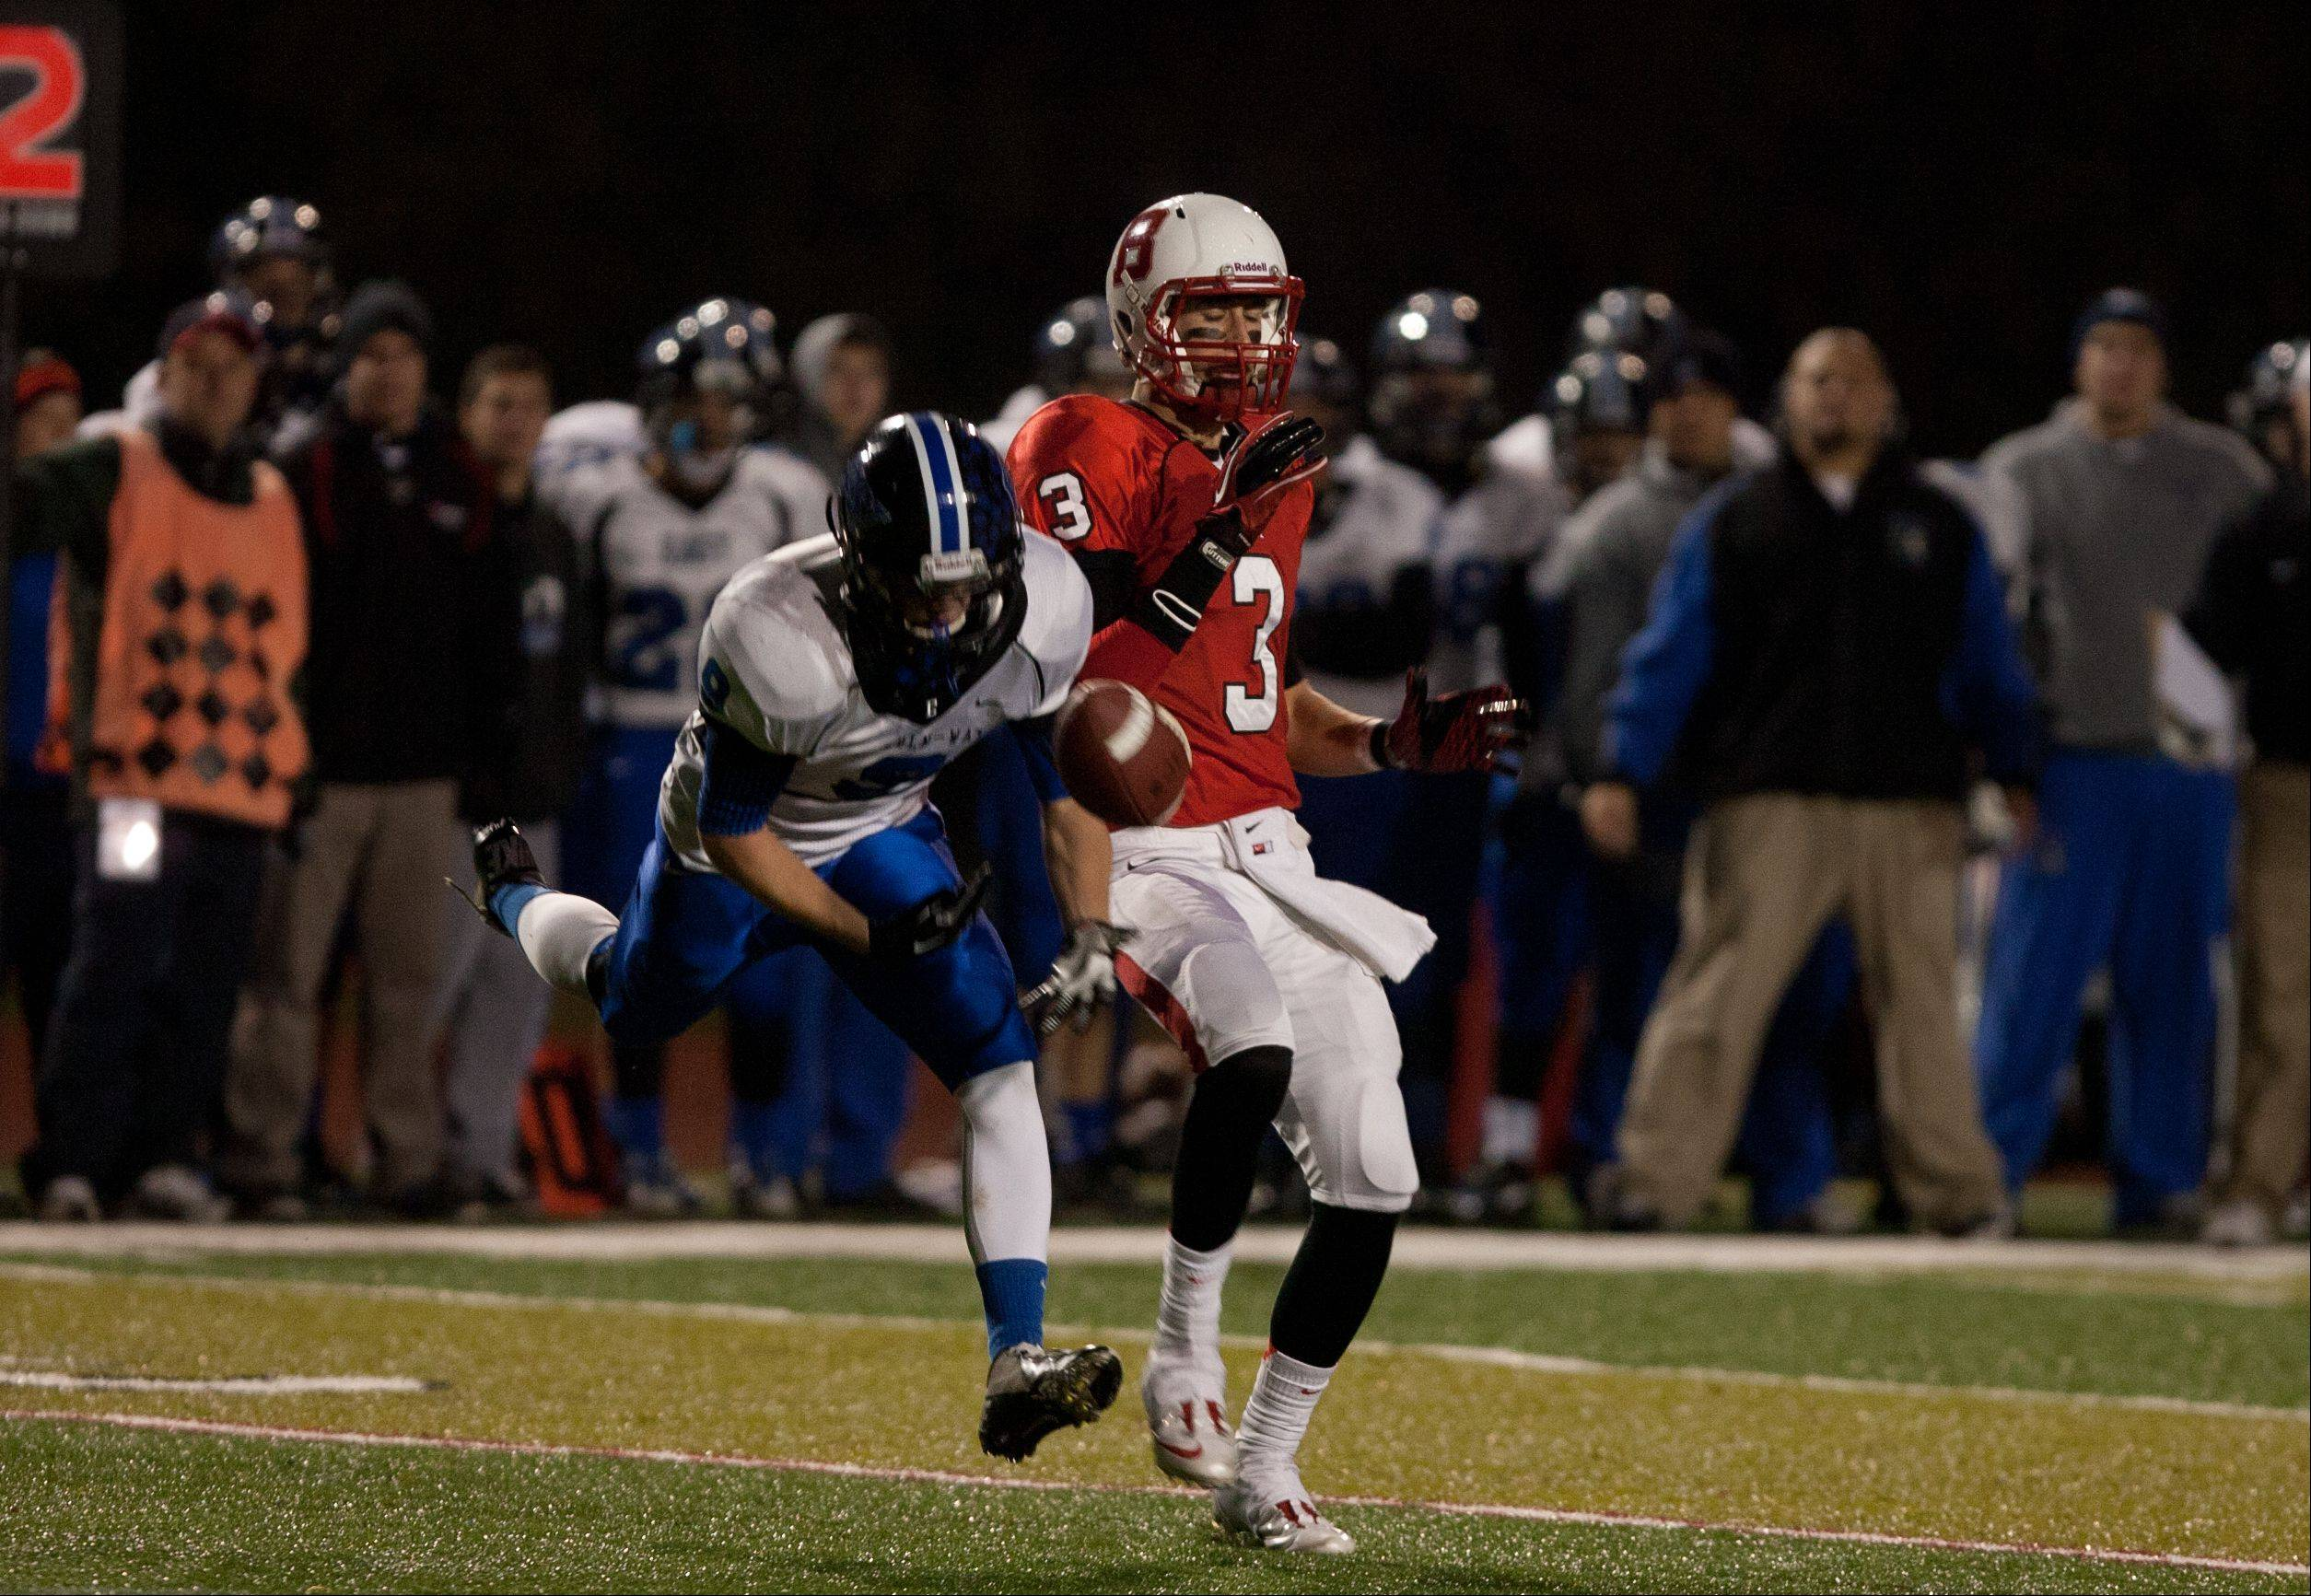 Benet Academy hosted Lincoln-Way Saturday night for IHSA state semifinal football action at Benedictine University in Lisle.